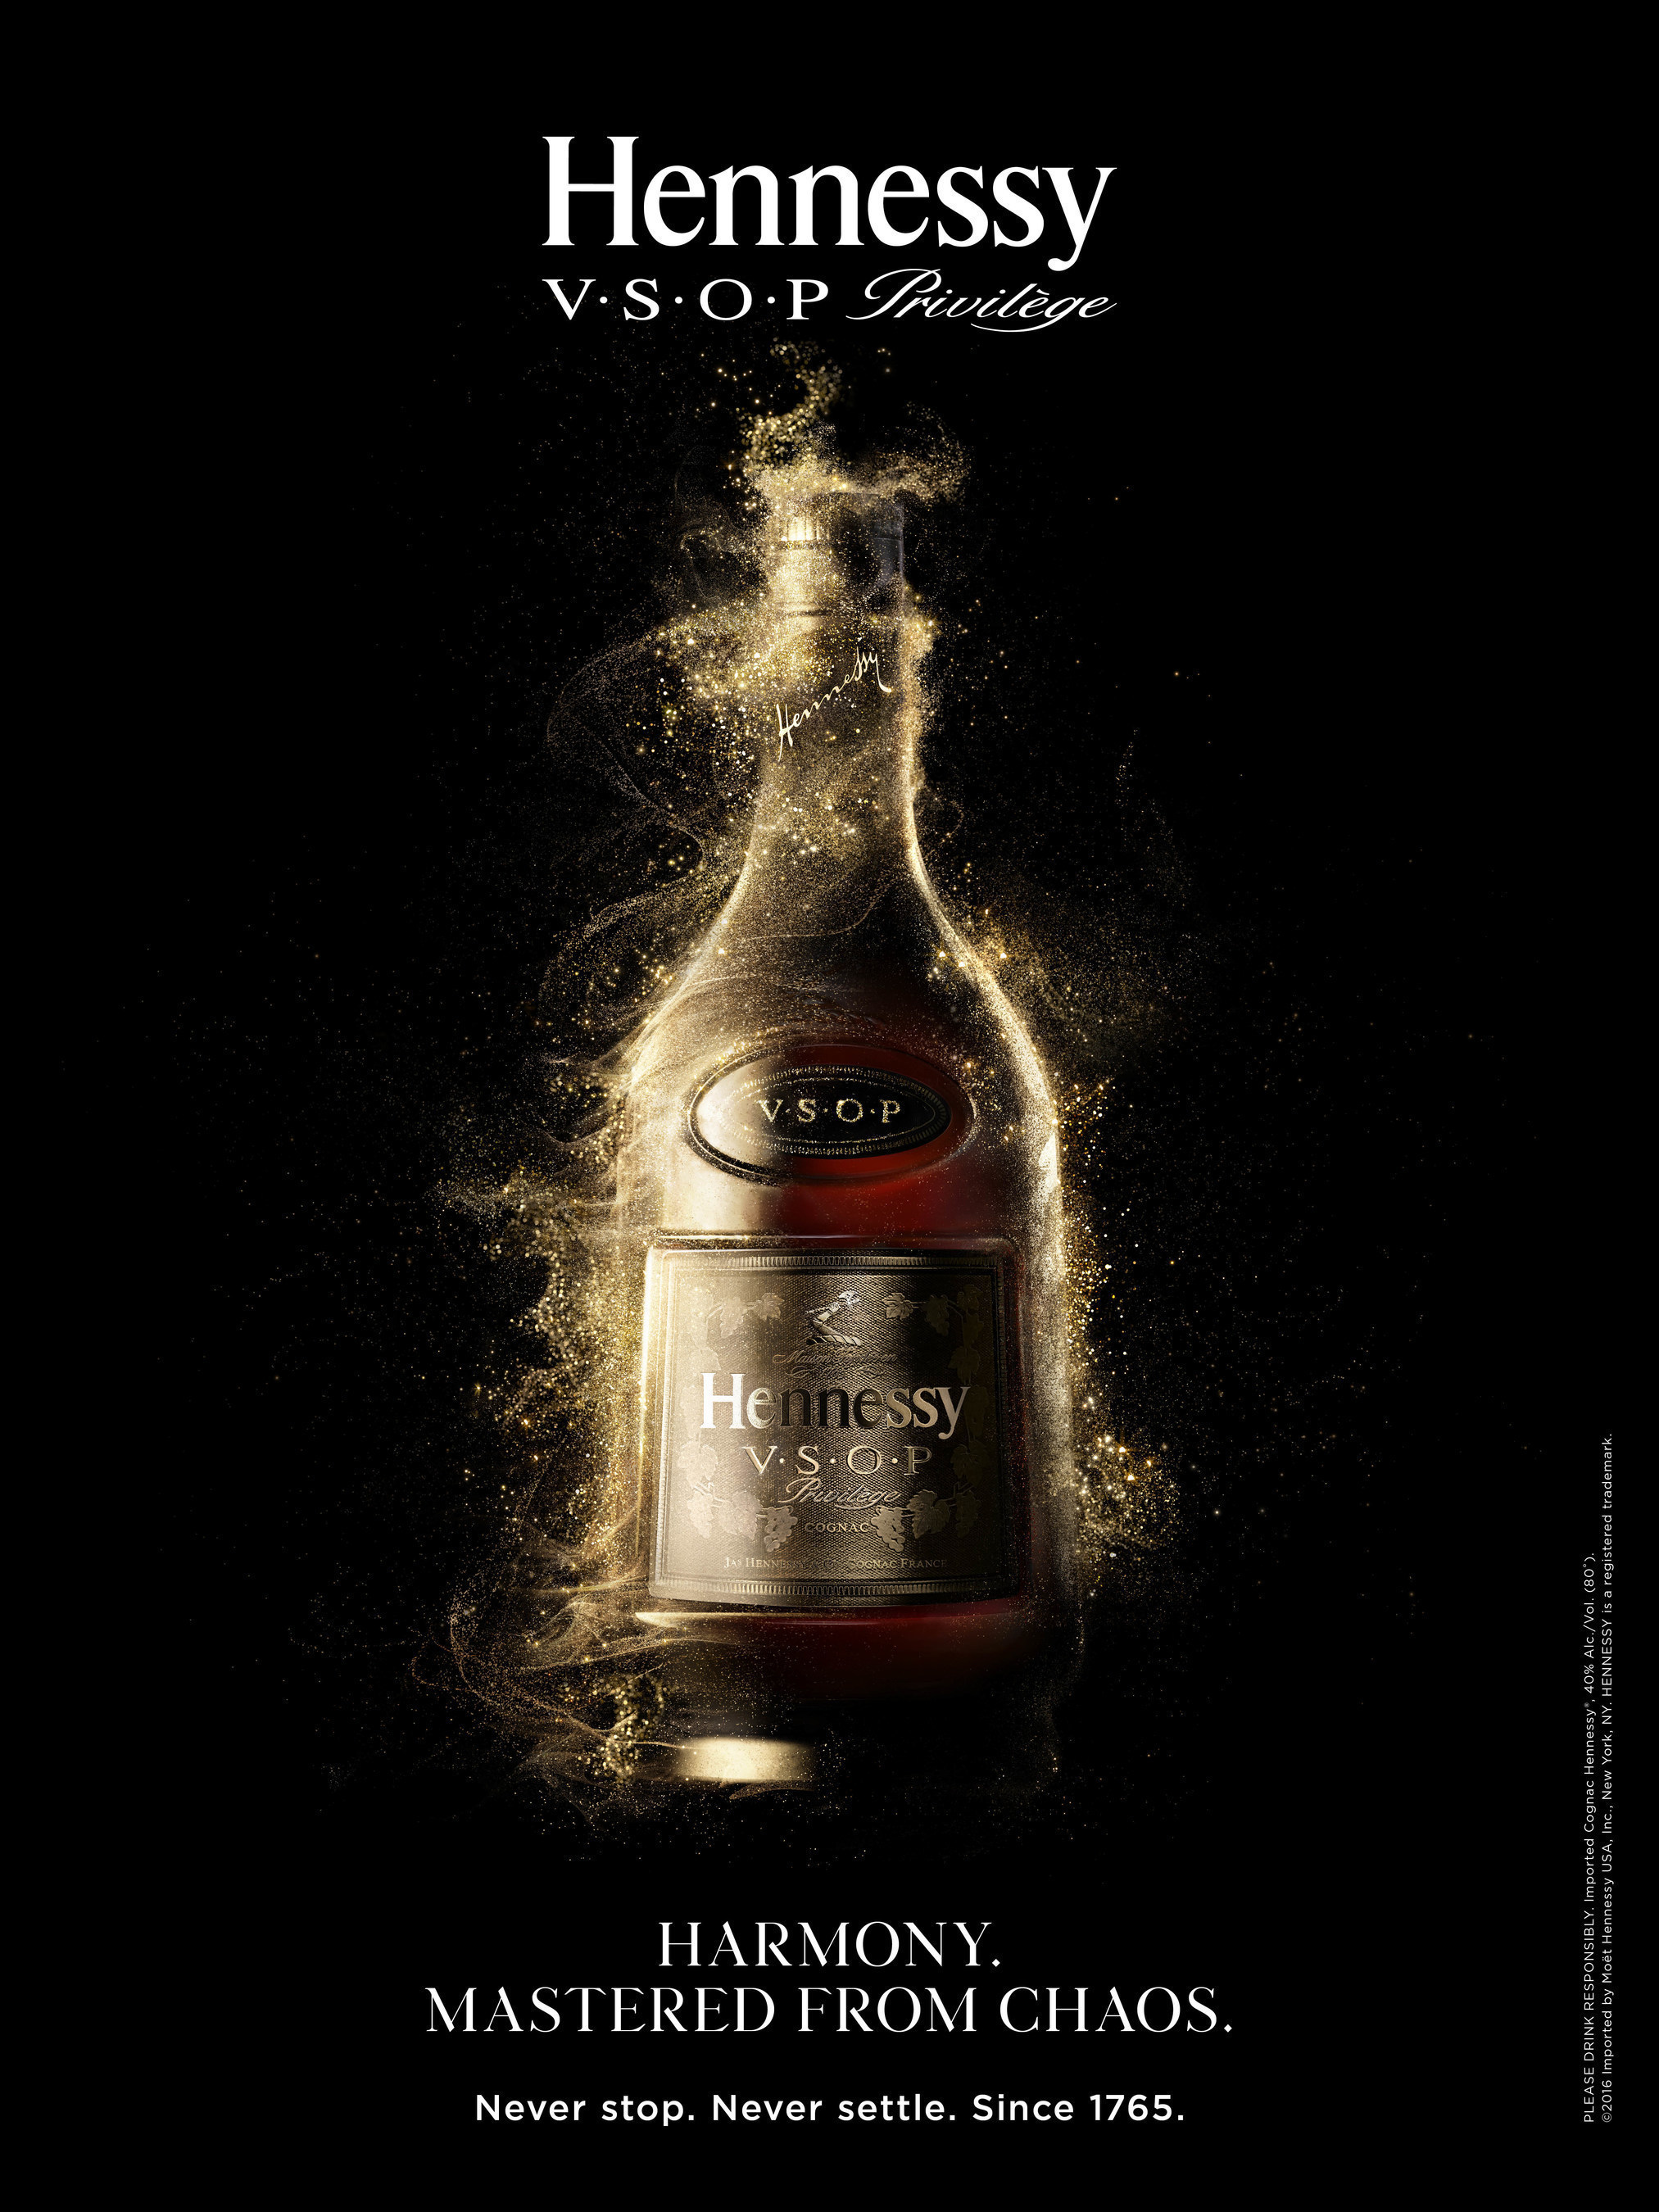 """The """"Harmony. Mastered from Chaos."""" campaign showcases the numerous, complex variables that are mastered in order to create the harmony and balance of Hennessy V.S.O.P Privilège."""